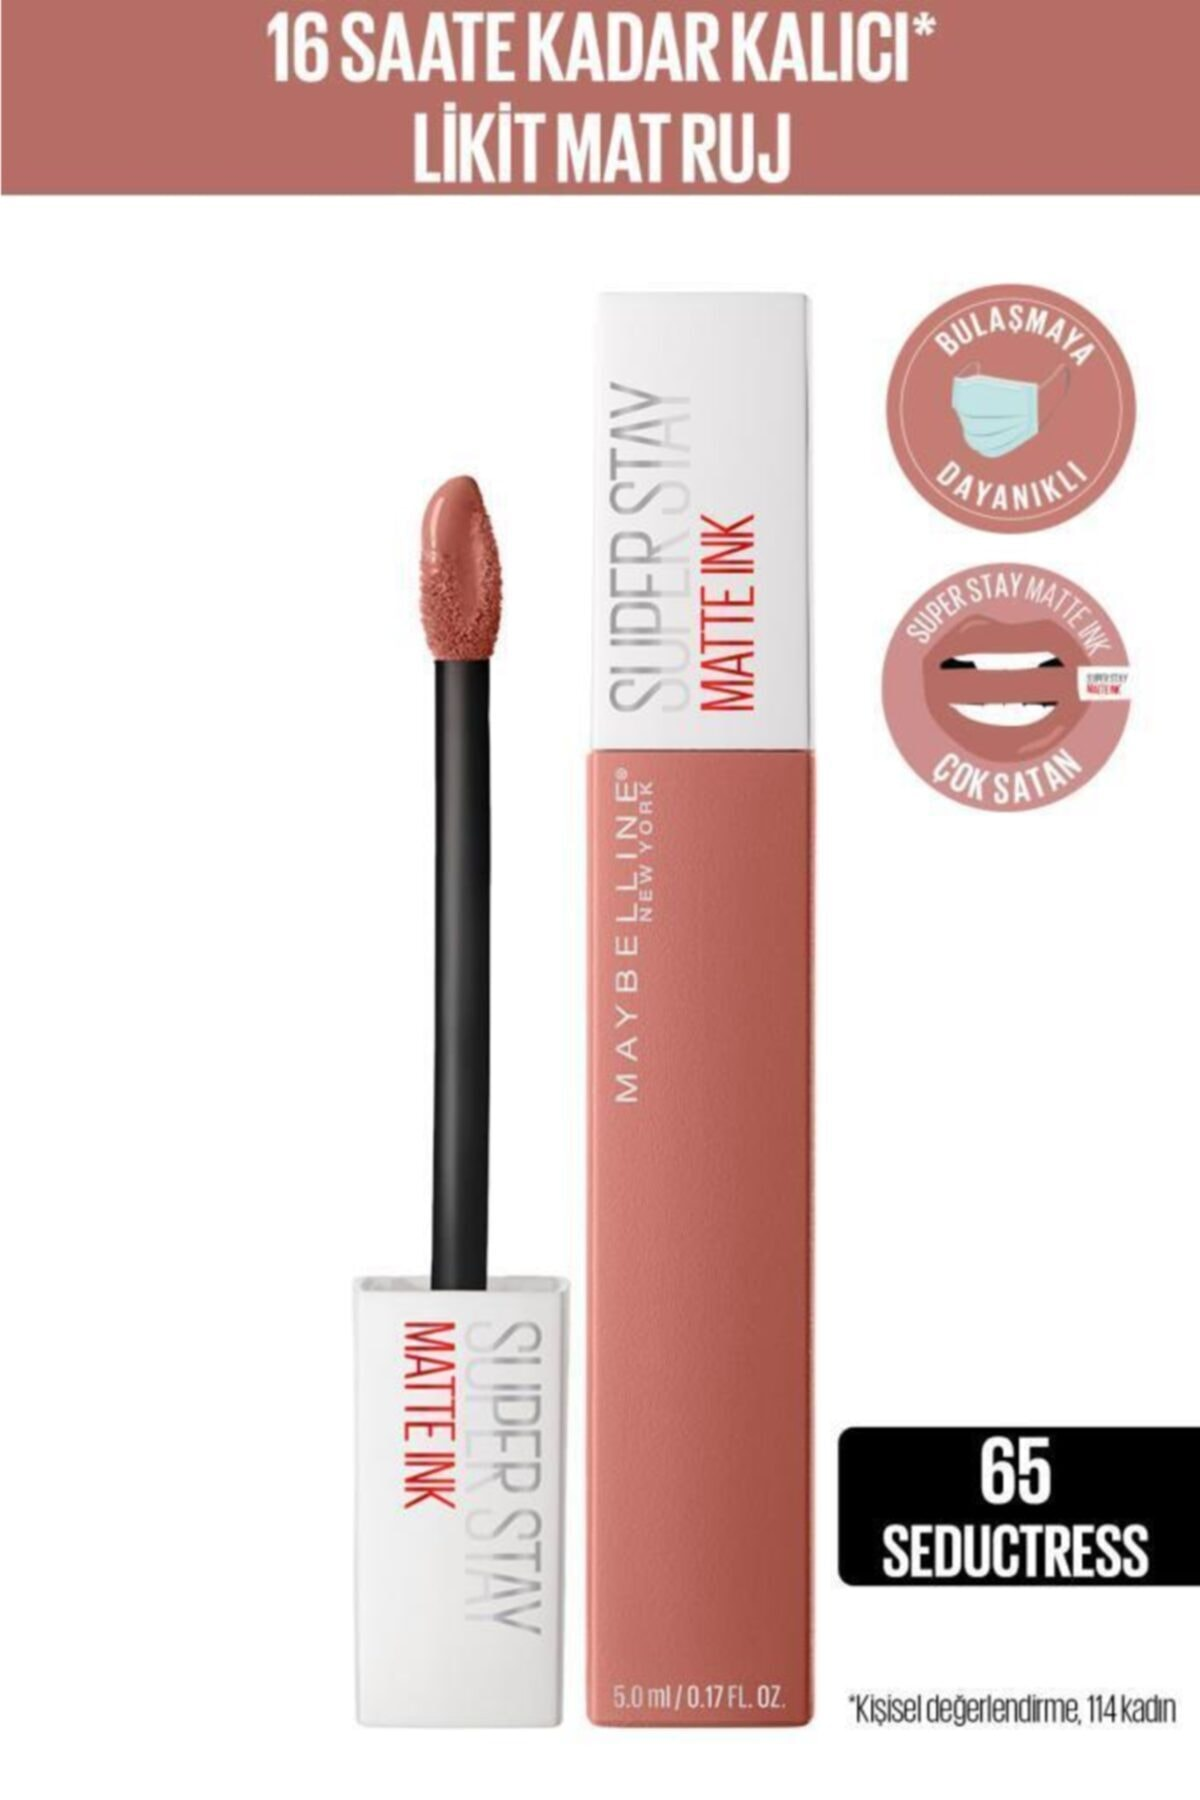 Maybelline New York Super Stay Matte Ink Unnude Likit Mat Ruj - 65 Seductress - Nude 1